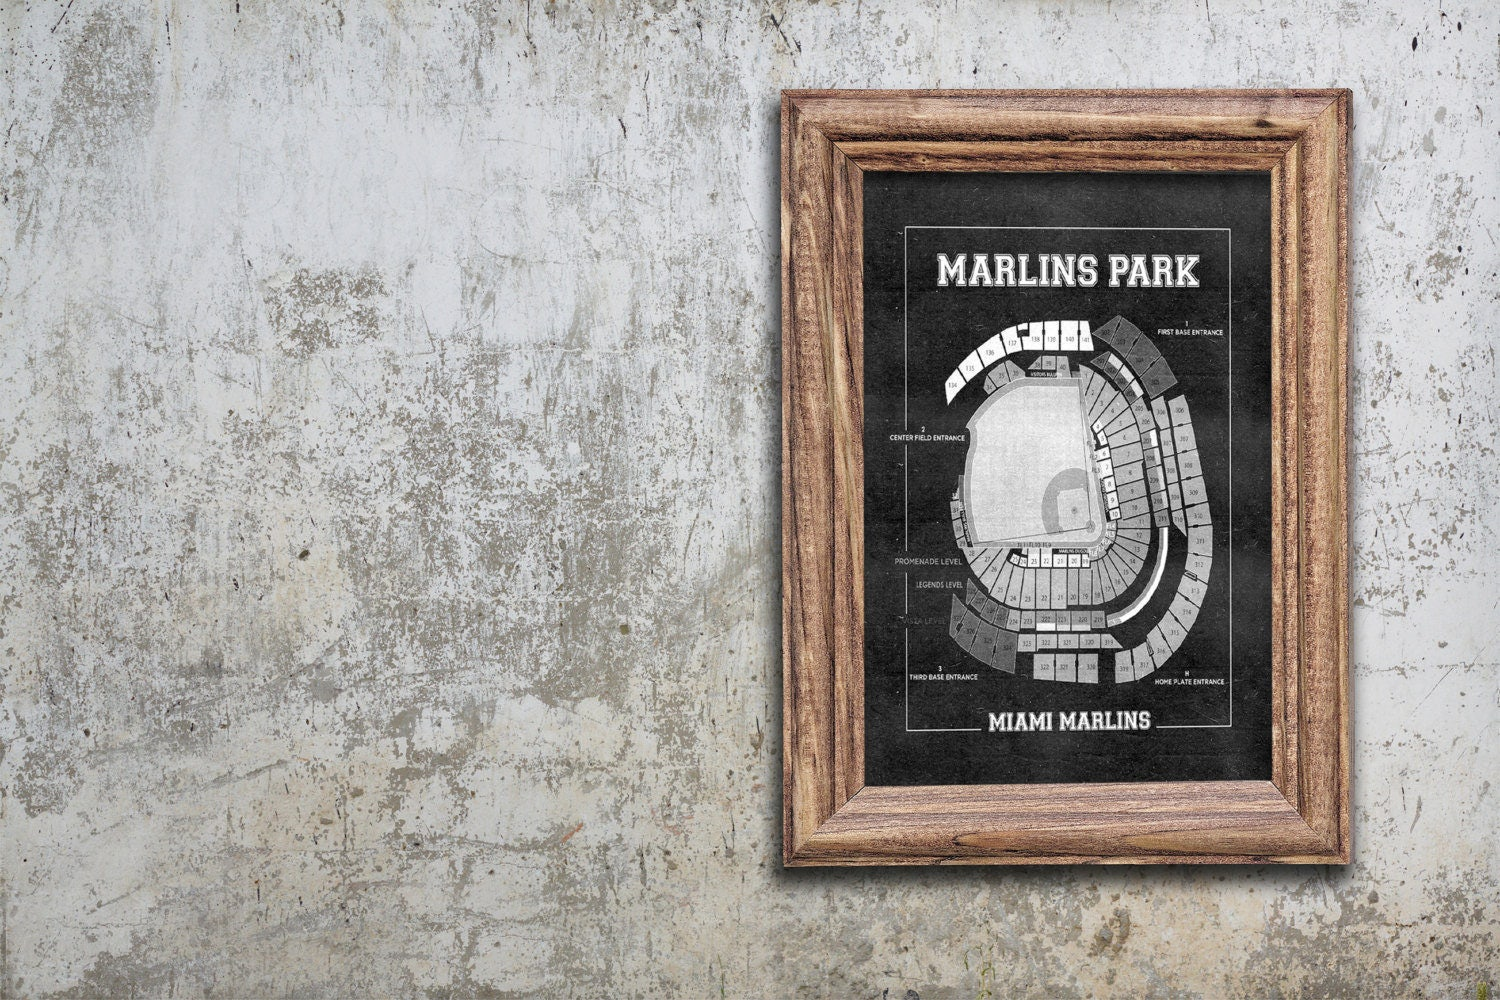 Vintage print of marlins park seating chart miami marlins baseball vintage print of marlins park seating chart miami marlins baseball blueprint on photo paper matte paper or stretched canvas malvernweather Choice Image